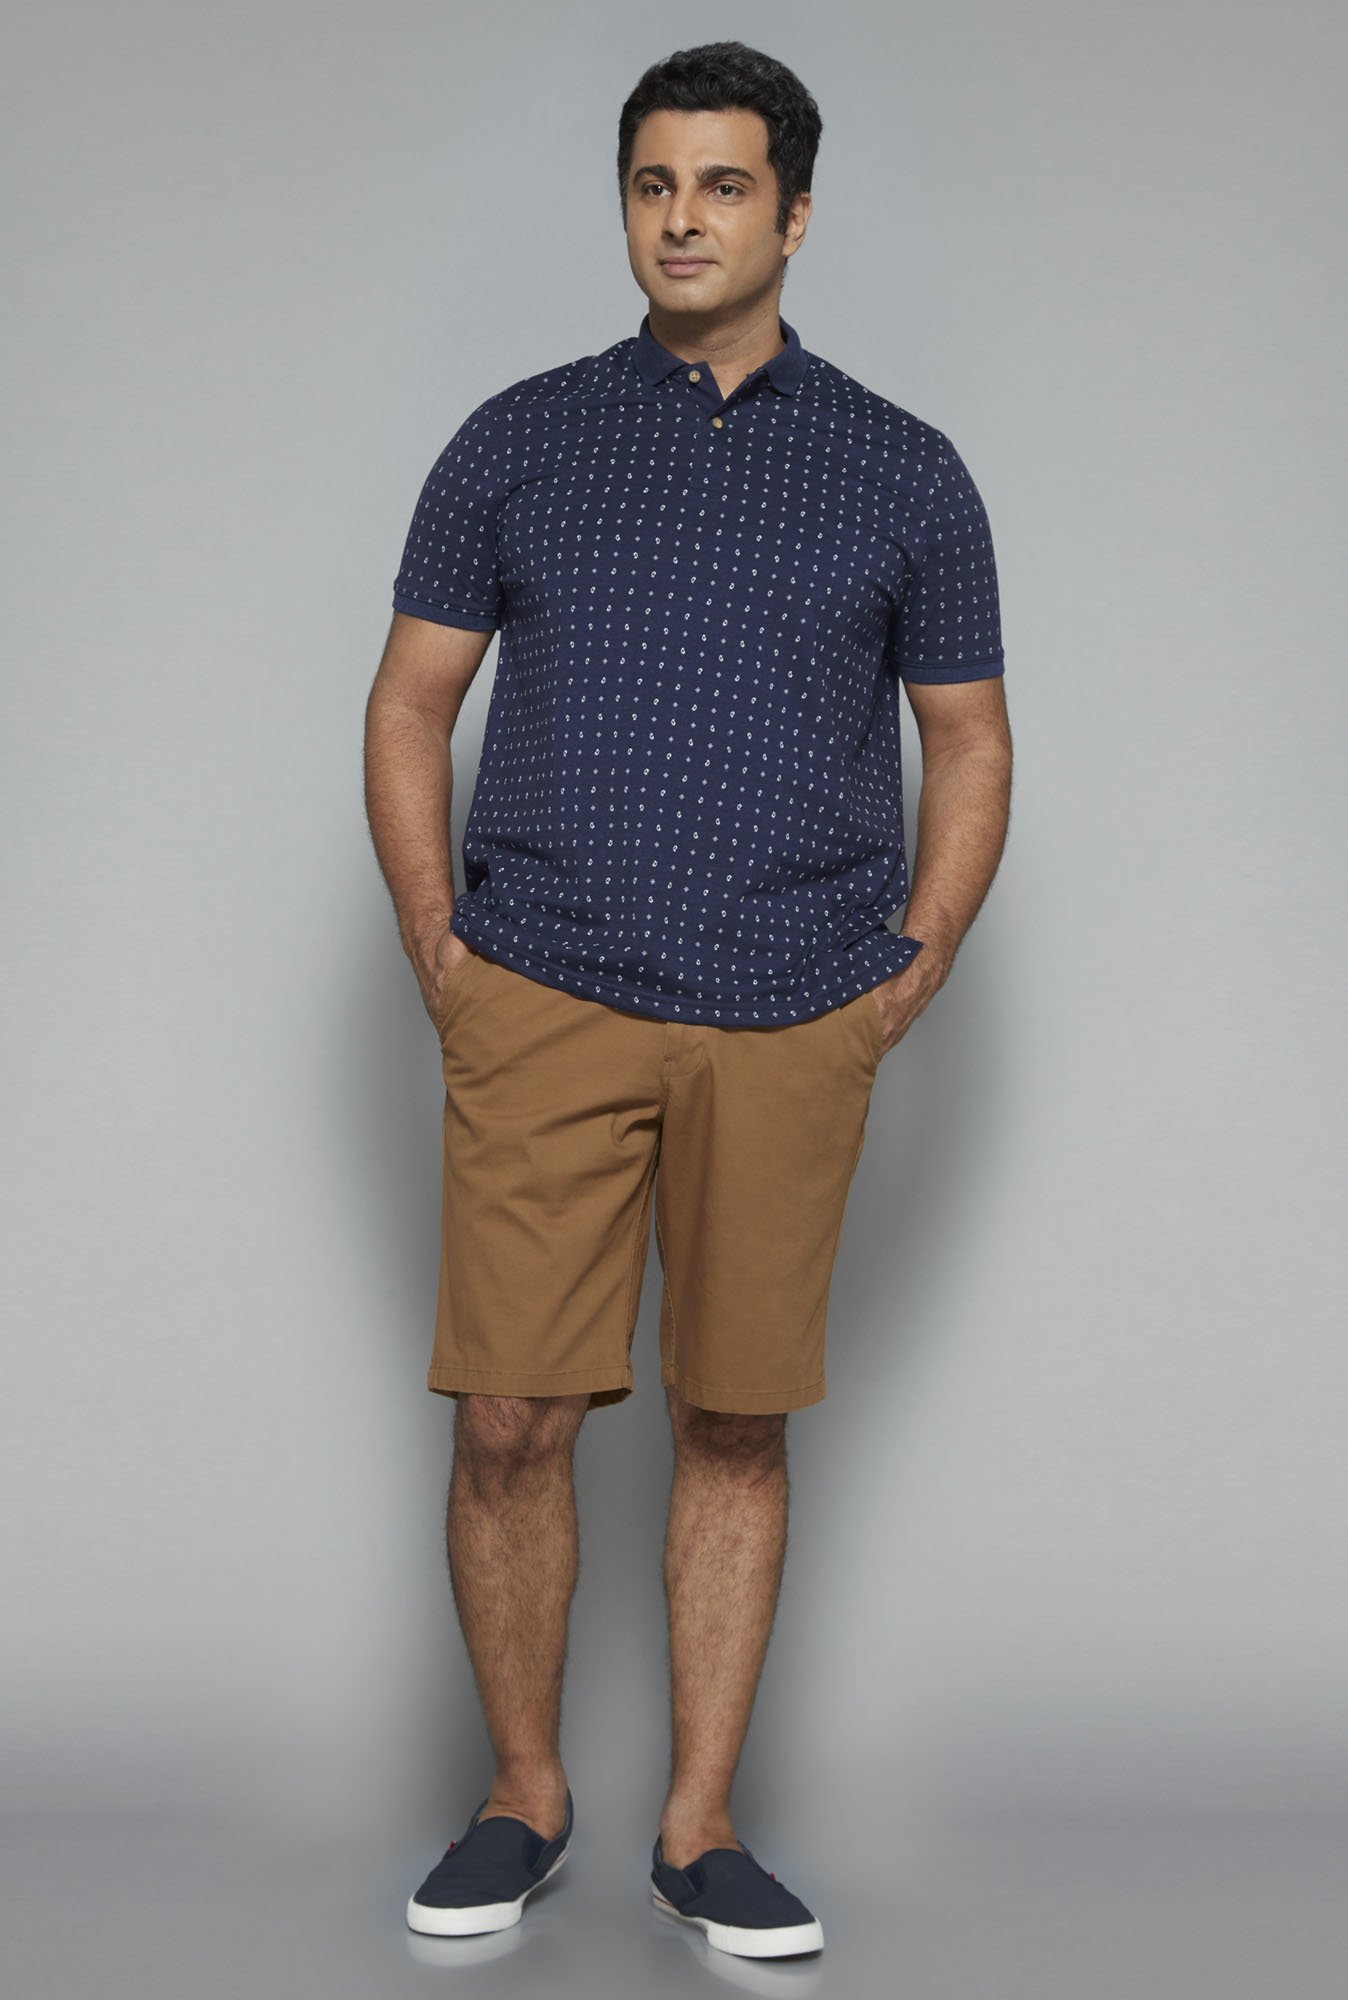 Oak & Keel by Westside Khaki Solid Shorts